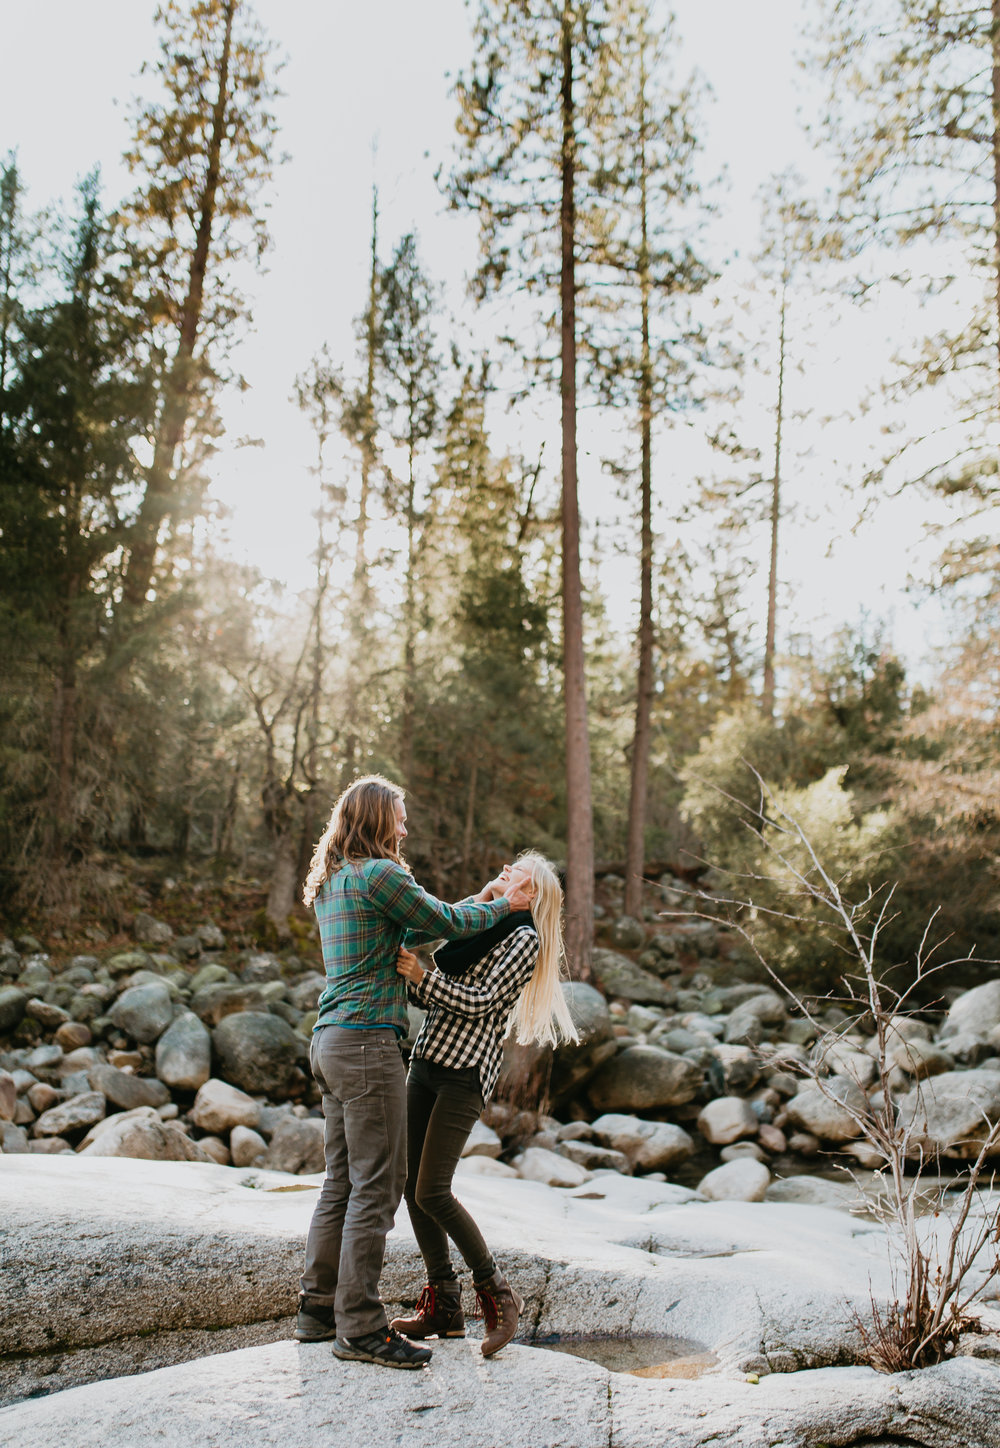 nicole-daacke-photography-yosemite-riverside-adventurous-engagement-photos-in-yosemite-national-park-elopement-photographer-weddings-travel-destination-wedding-eloping-elope-pine-forest-23.jpg